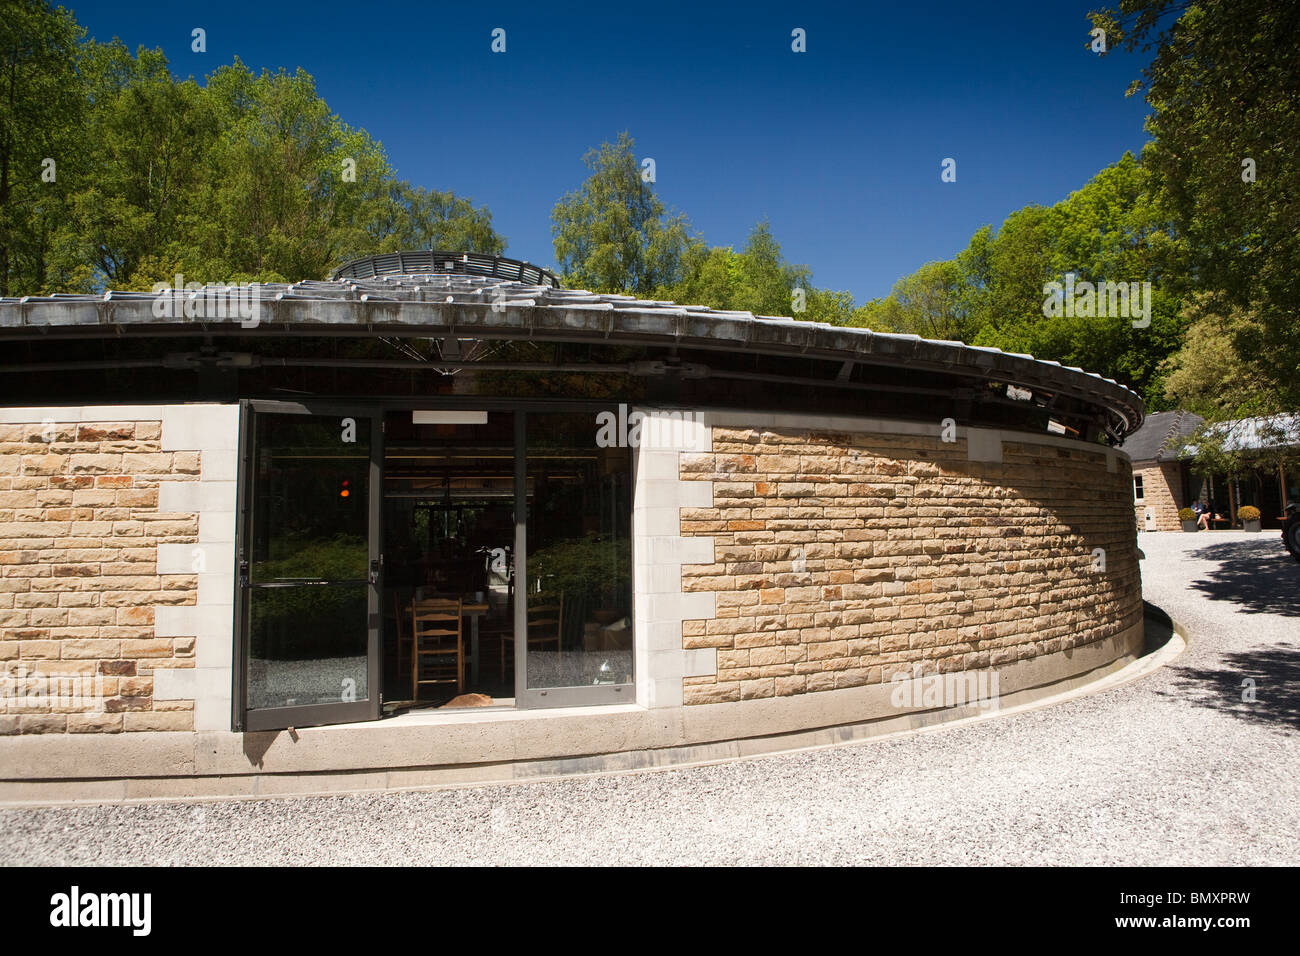 UK, England, Derbyshire, Peak District, Hathersage, Old Gasworks, David Mellor cutlery factory, roundhouse Stock Photo